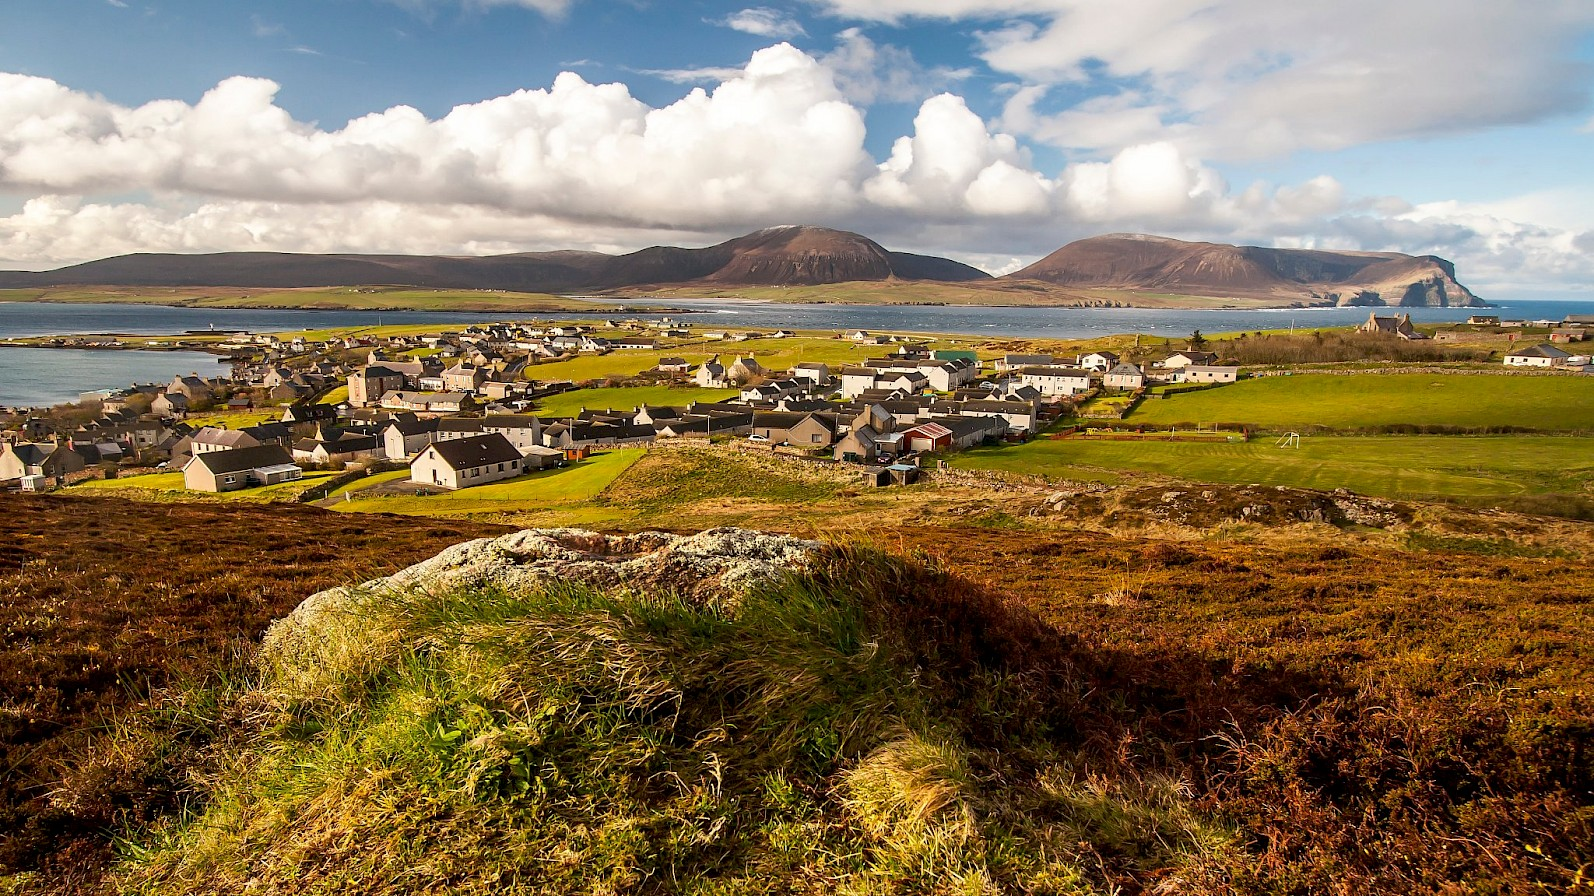 View over Stromness from Brinkies Brae - image by Maciek Orlicki